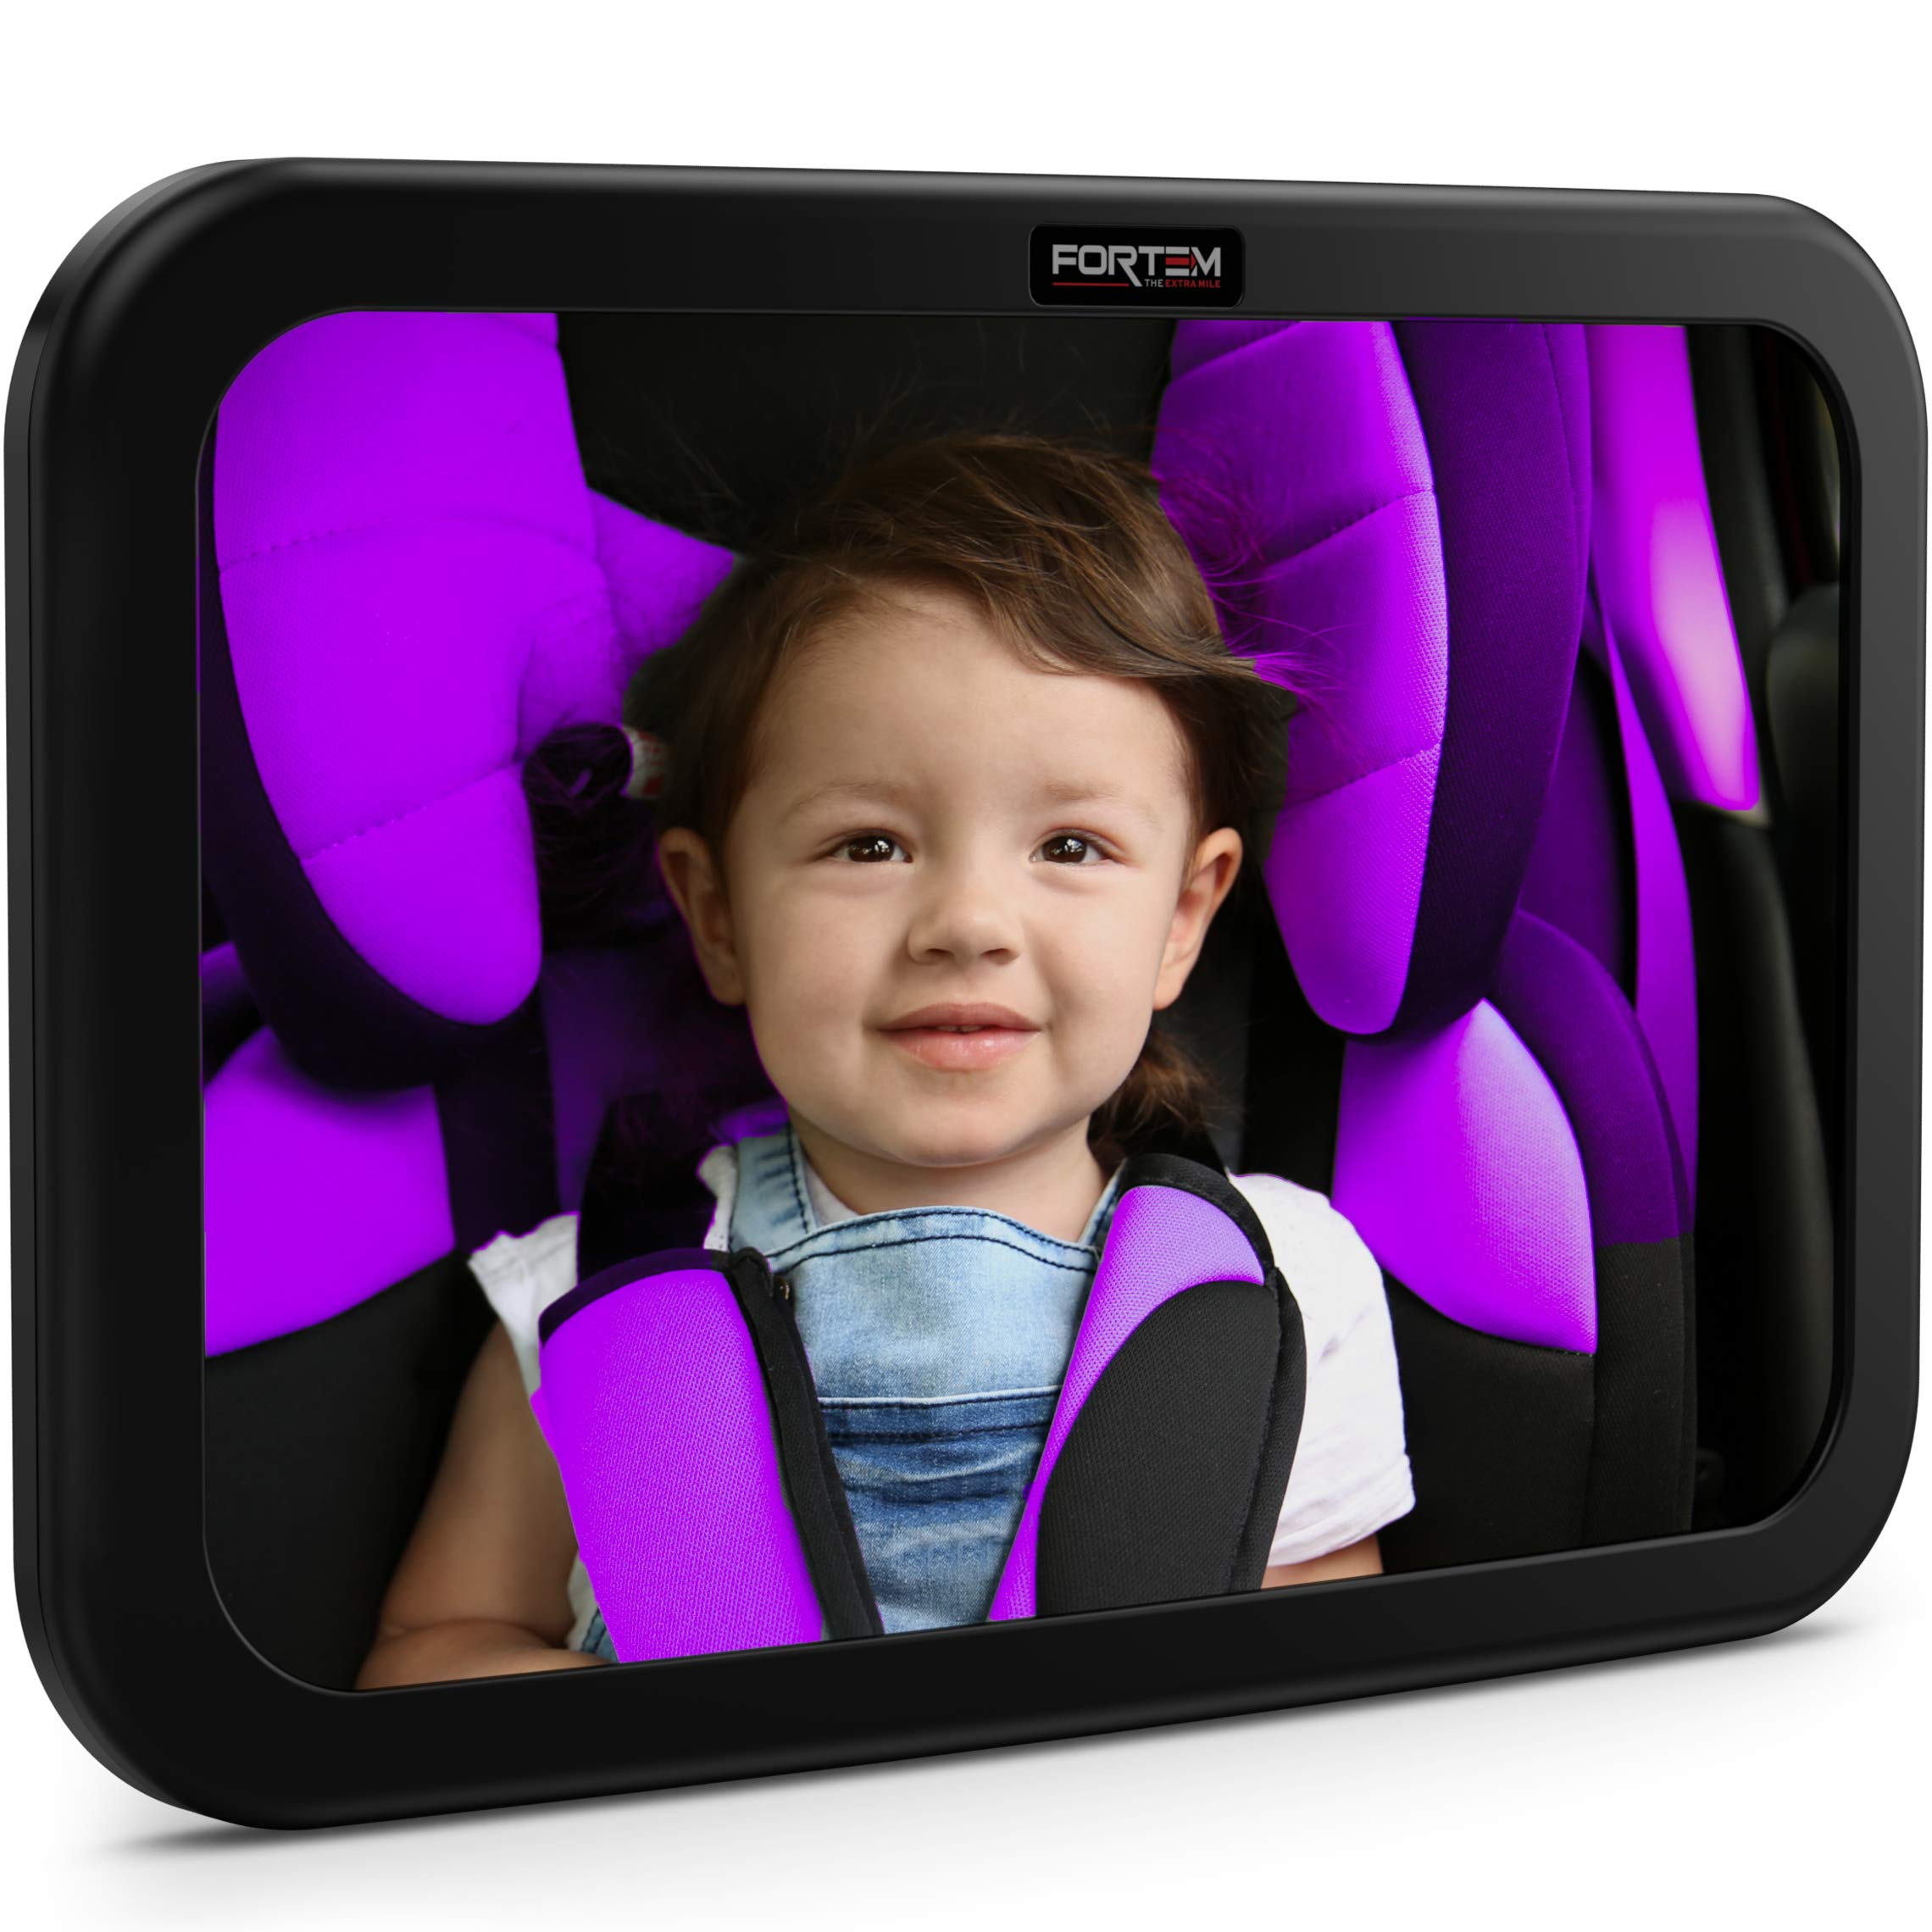 FORTEM Baby Car Mirror, Wide Angle w/Shatterproof Glass, Crash Tested for Safety by FORTEM